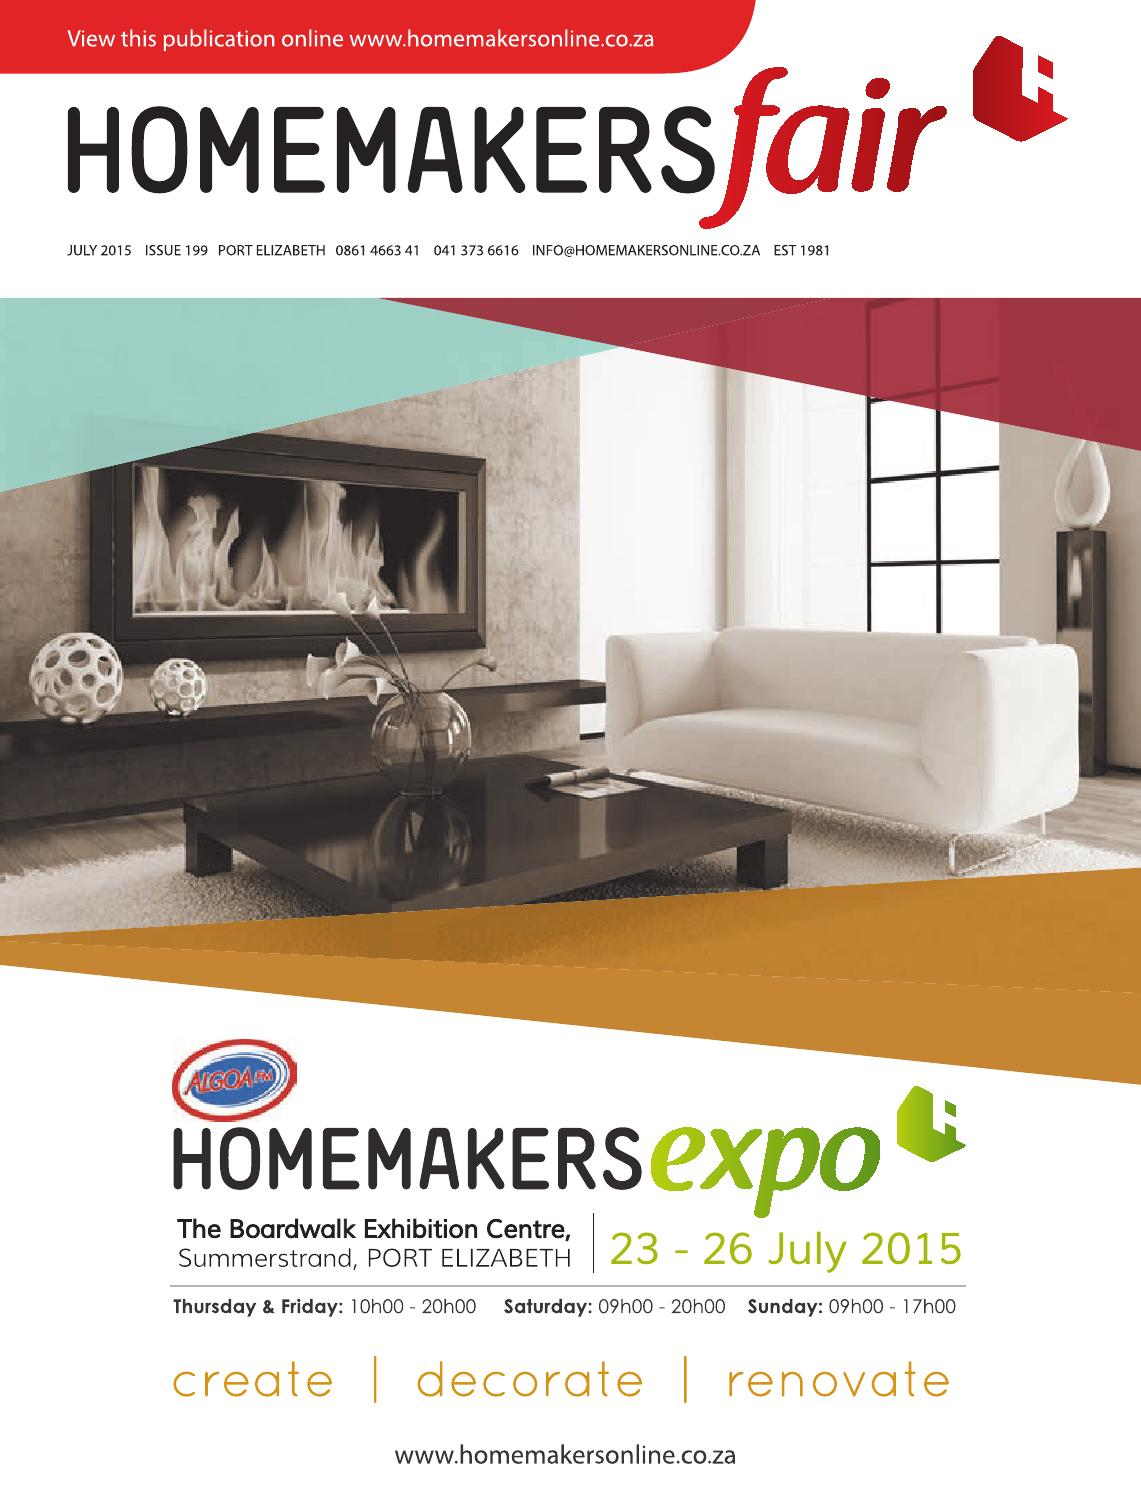 HOMEMAKERSfair Port Elizabeth July 2015 By HOMEMAKERS